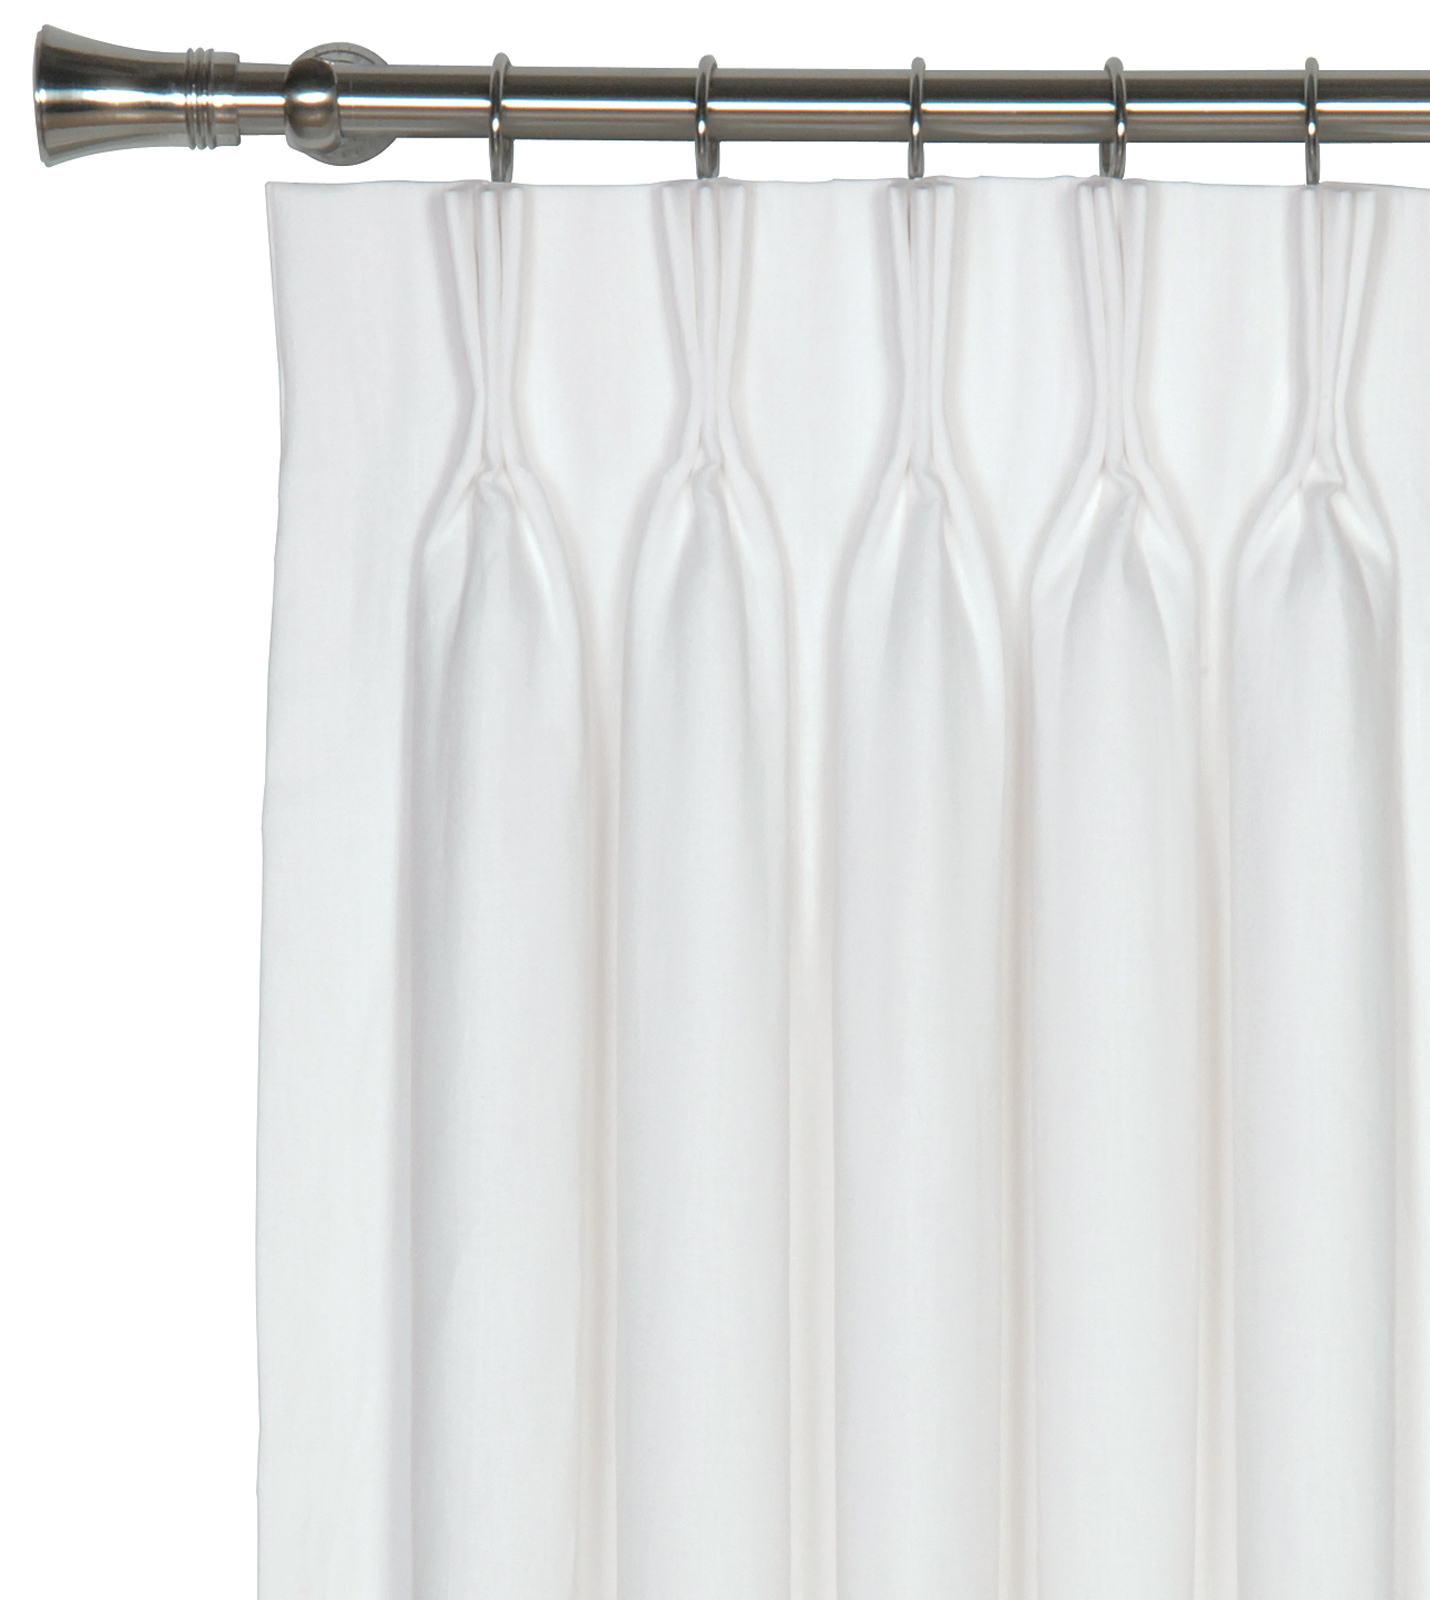 White Curtain Breeze white curtain panel